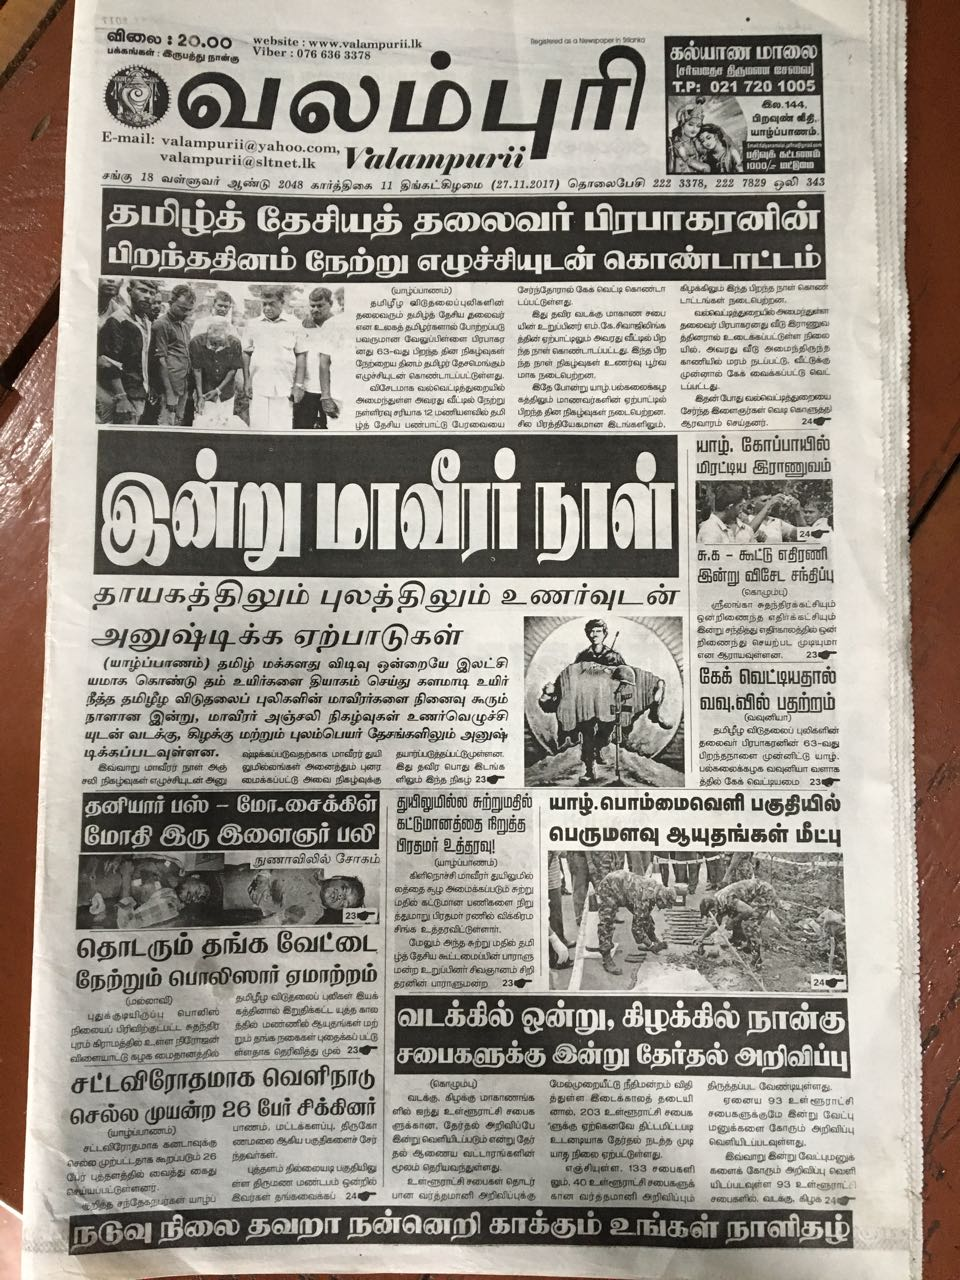 Tamil newspapers mark Maaveerar Naal on front pages | Tamil